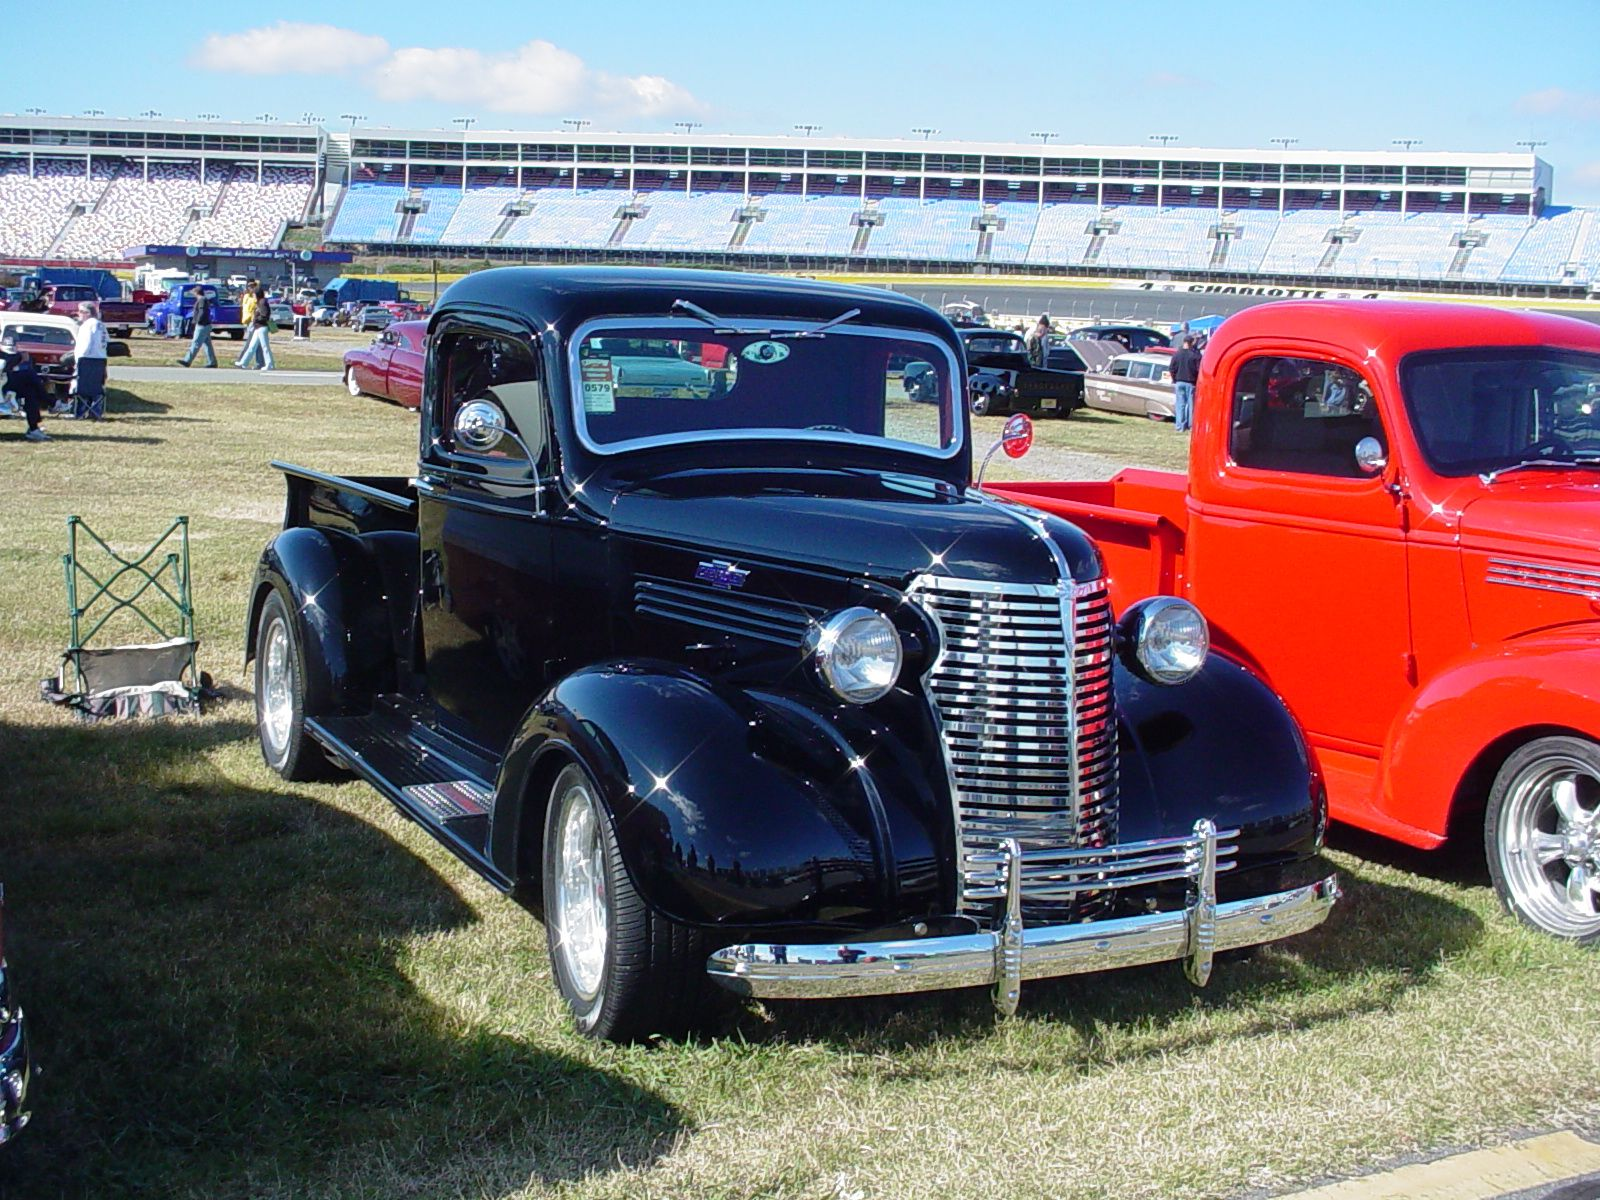 1938 chevrolet pickup nice rides chevy trucks. Black Bedroom Furniture Sets. Home Design Ideas